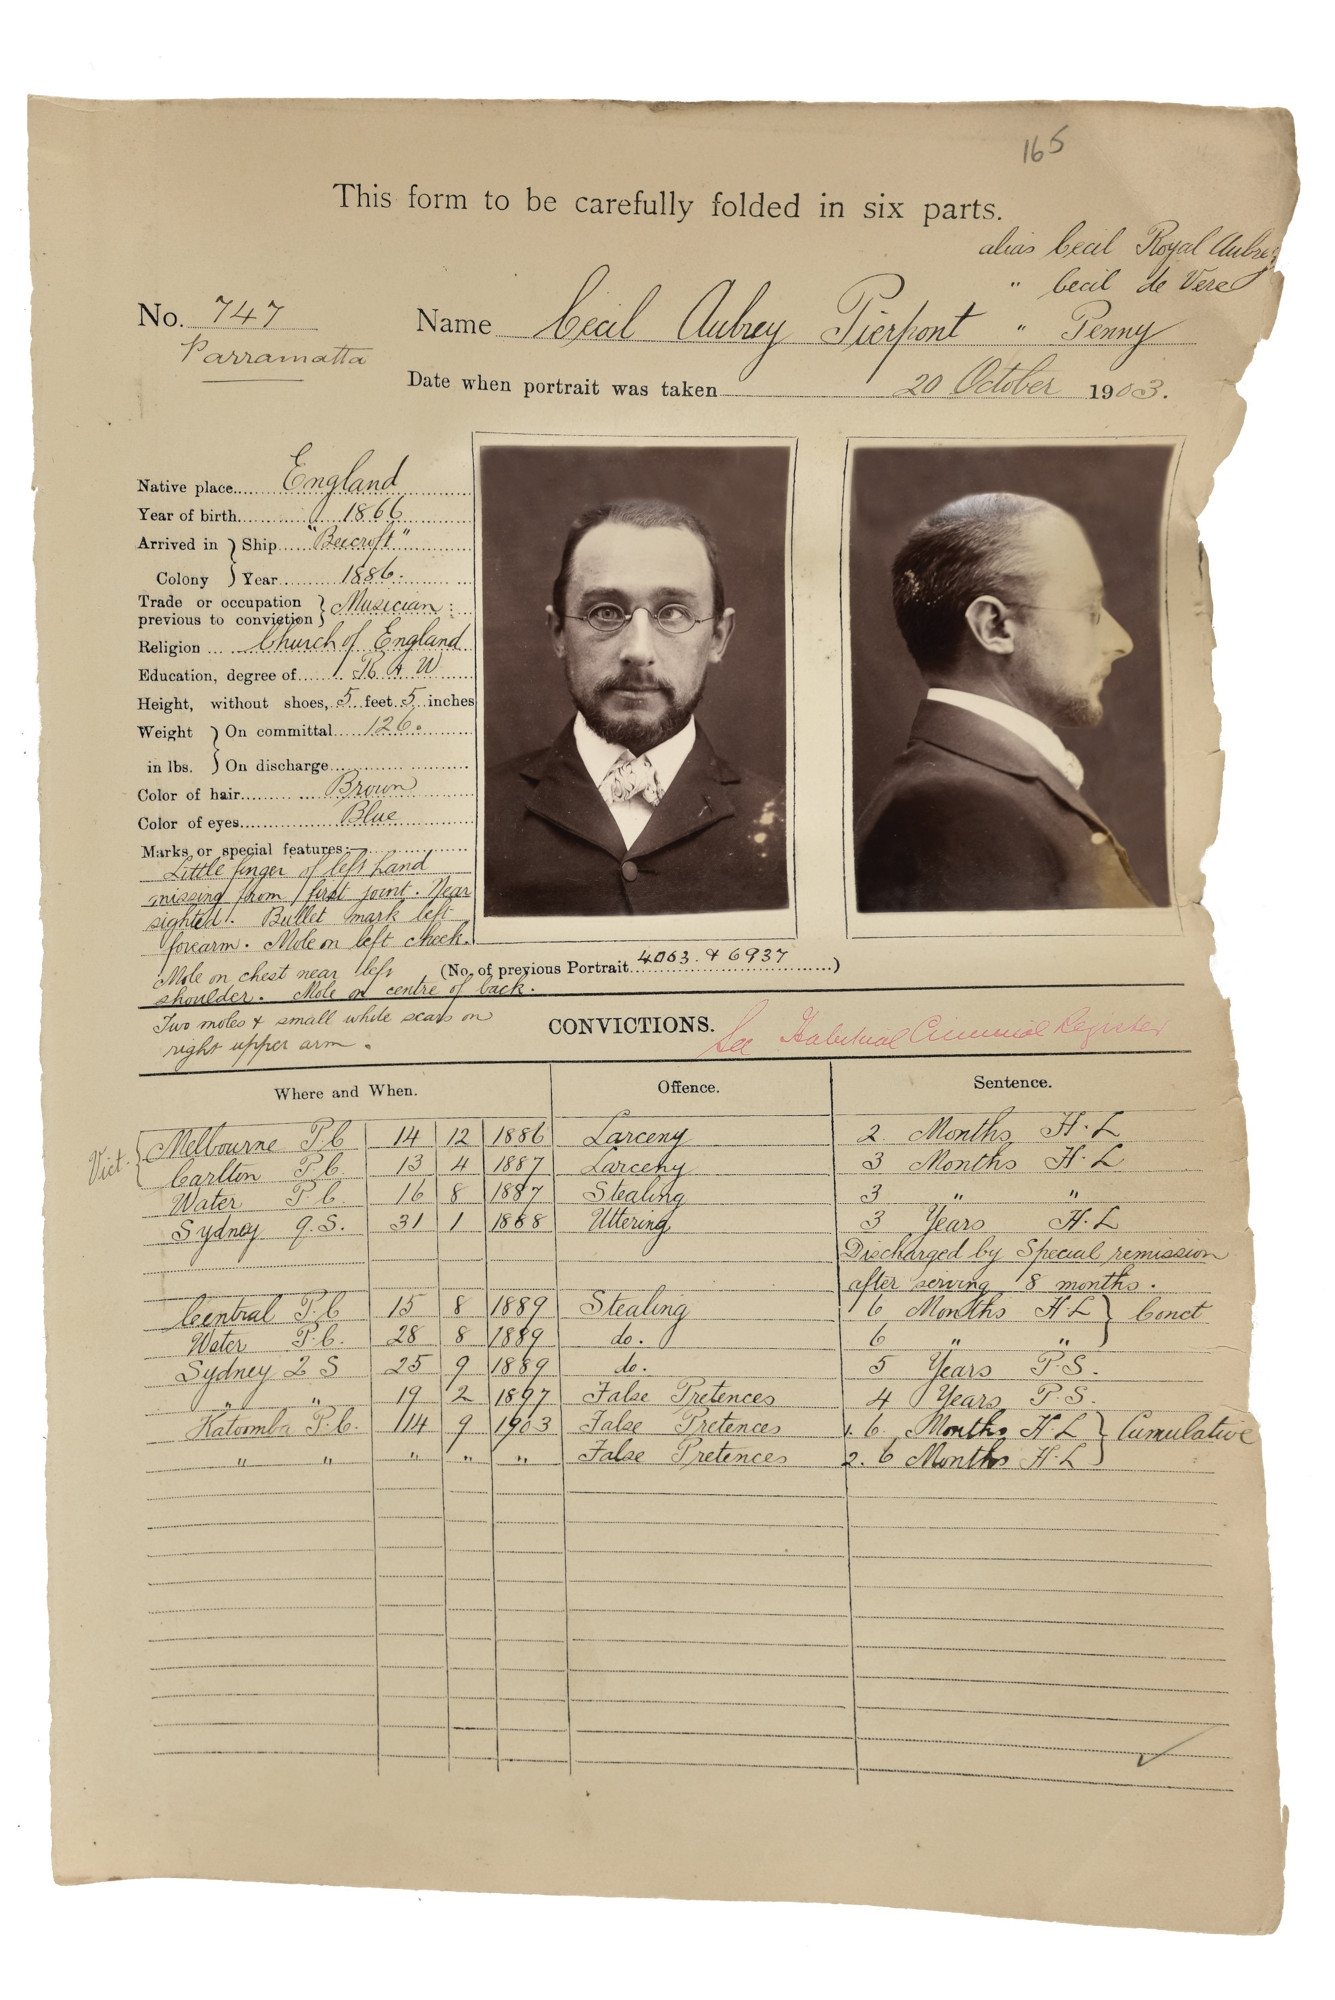 Slightly damaged document with small photo attached with written details of prisoner.